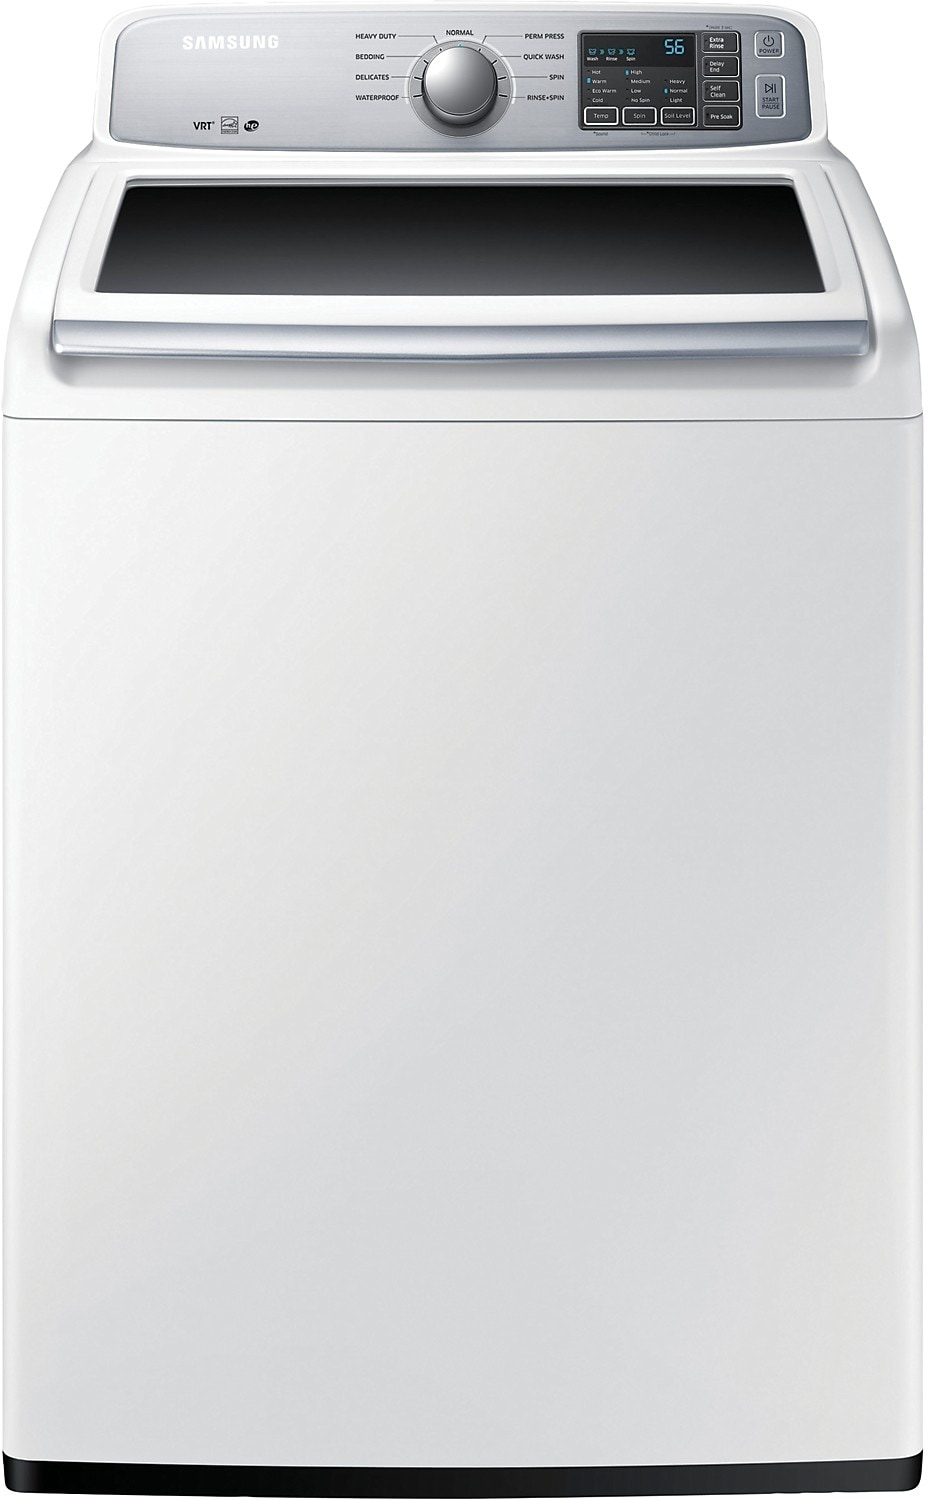 Samsung 5.2 Cu. Ft.  Large Capacity Top-Load Washer - White